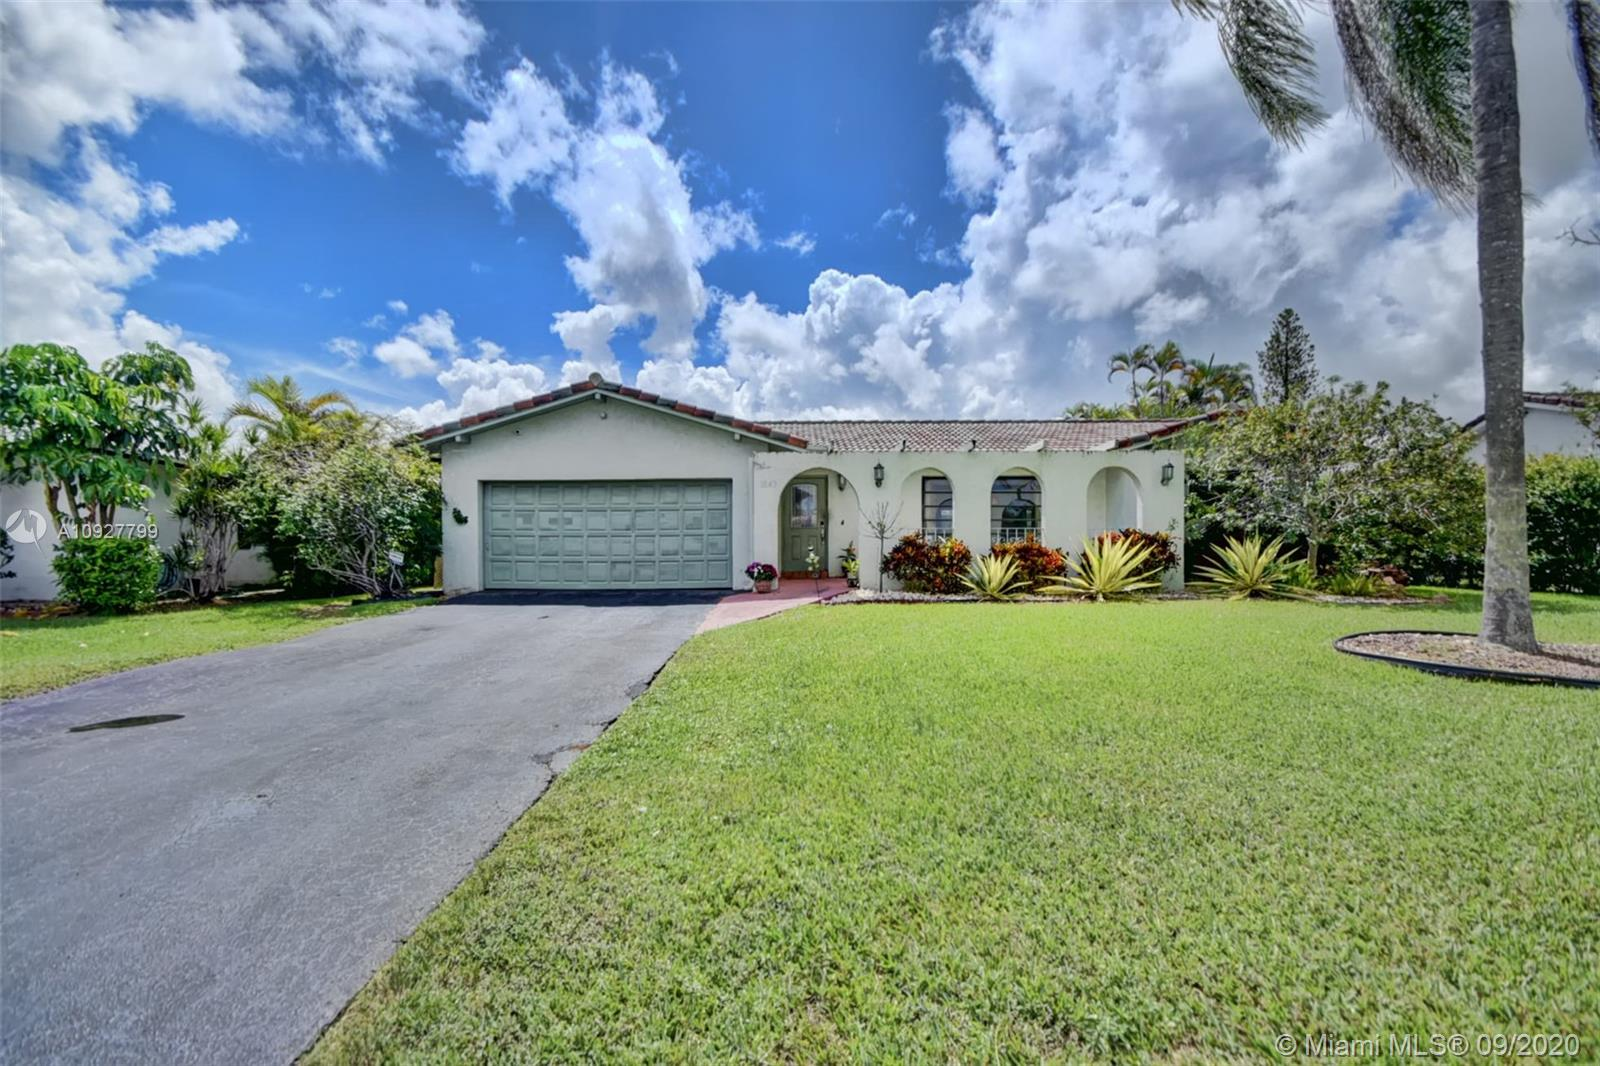 Fantastic 4 bedroom, 2 bathroom home with a pool and on the water in the beautiful Ramblewood community in Coral Springs! Home features a split floorplan, renovated kitchen that is open to the oversized family room.  The garage is converted.  Stunning views of the water and pool right from your kitchen! NO HOA!! Roof replaced in 2007! Located close to major highways restaurants and shopping!